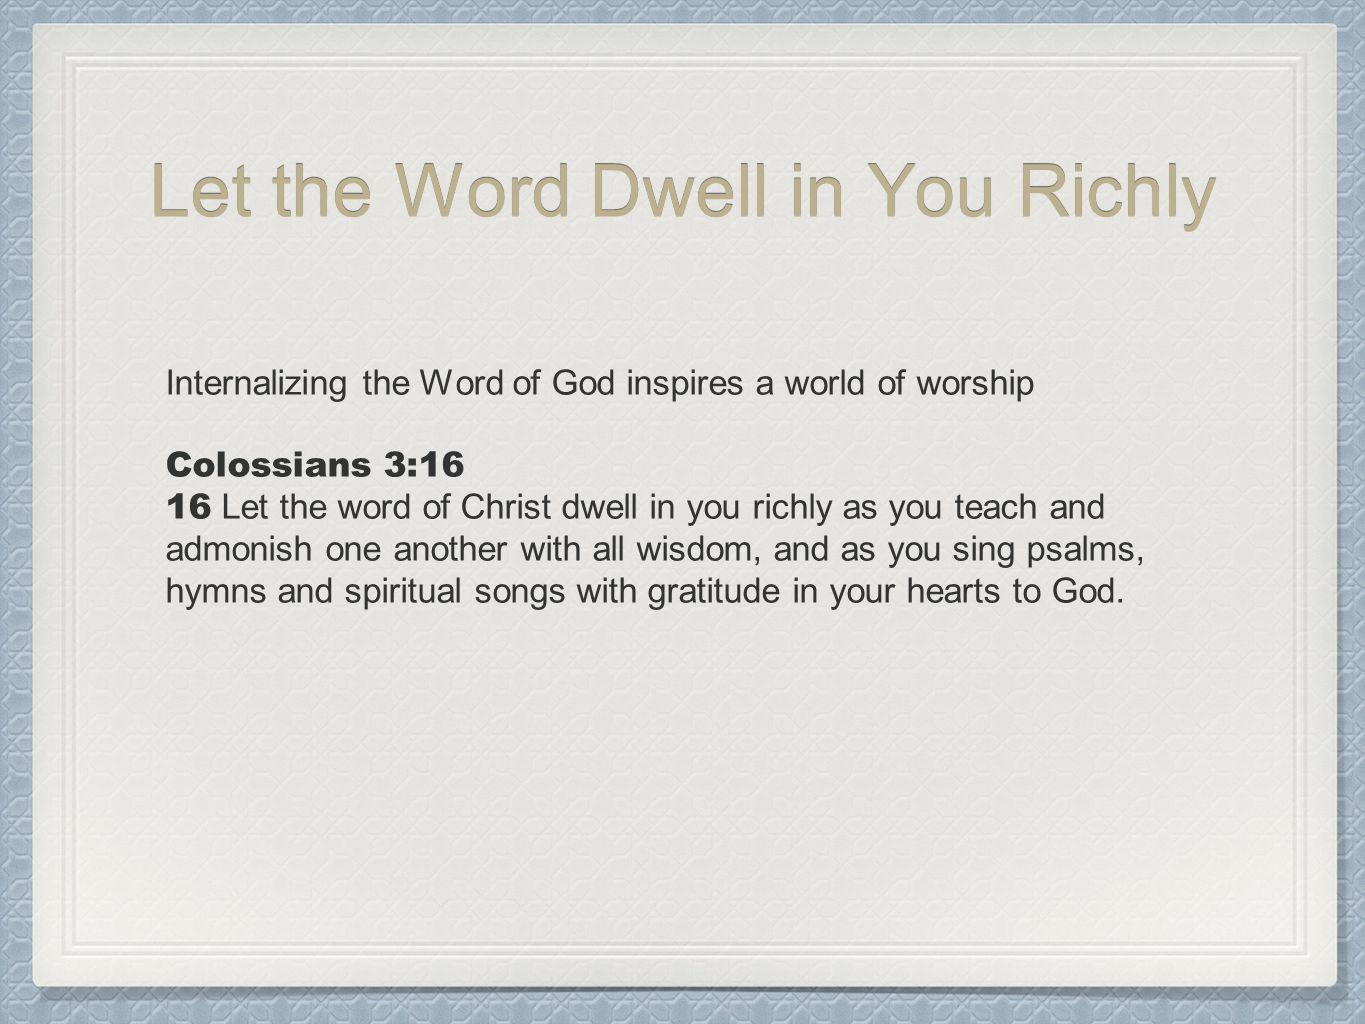 Let the Word Dwell in You Richly Internalizing the Word of God inspires a world of worship Colossians 3:16 16 Let the word of Christ dwell in you richly as you teach and admonish one another with all wisdom, and as you sing psalms, hymns and spiritual songs with gratitude in your hearts to God.